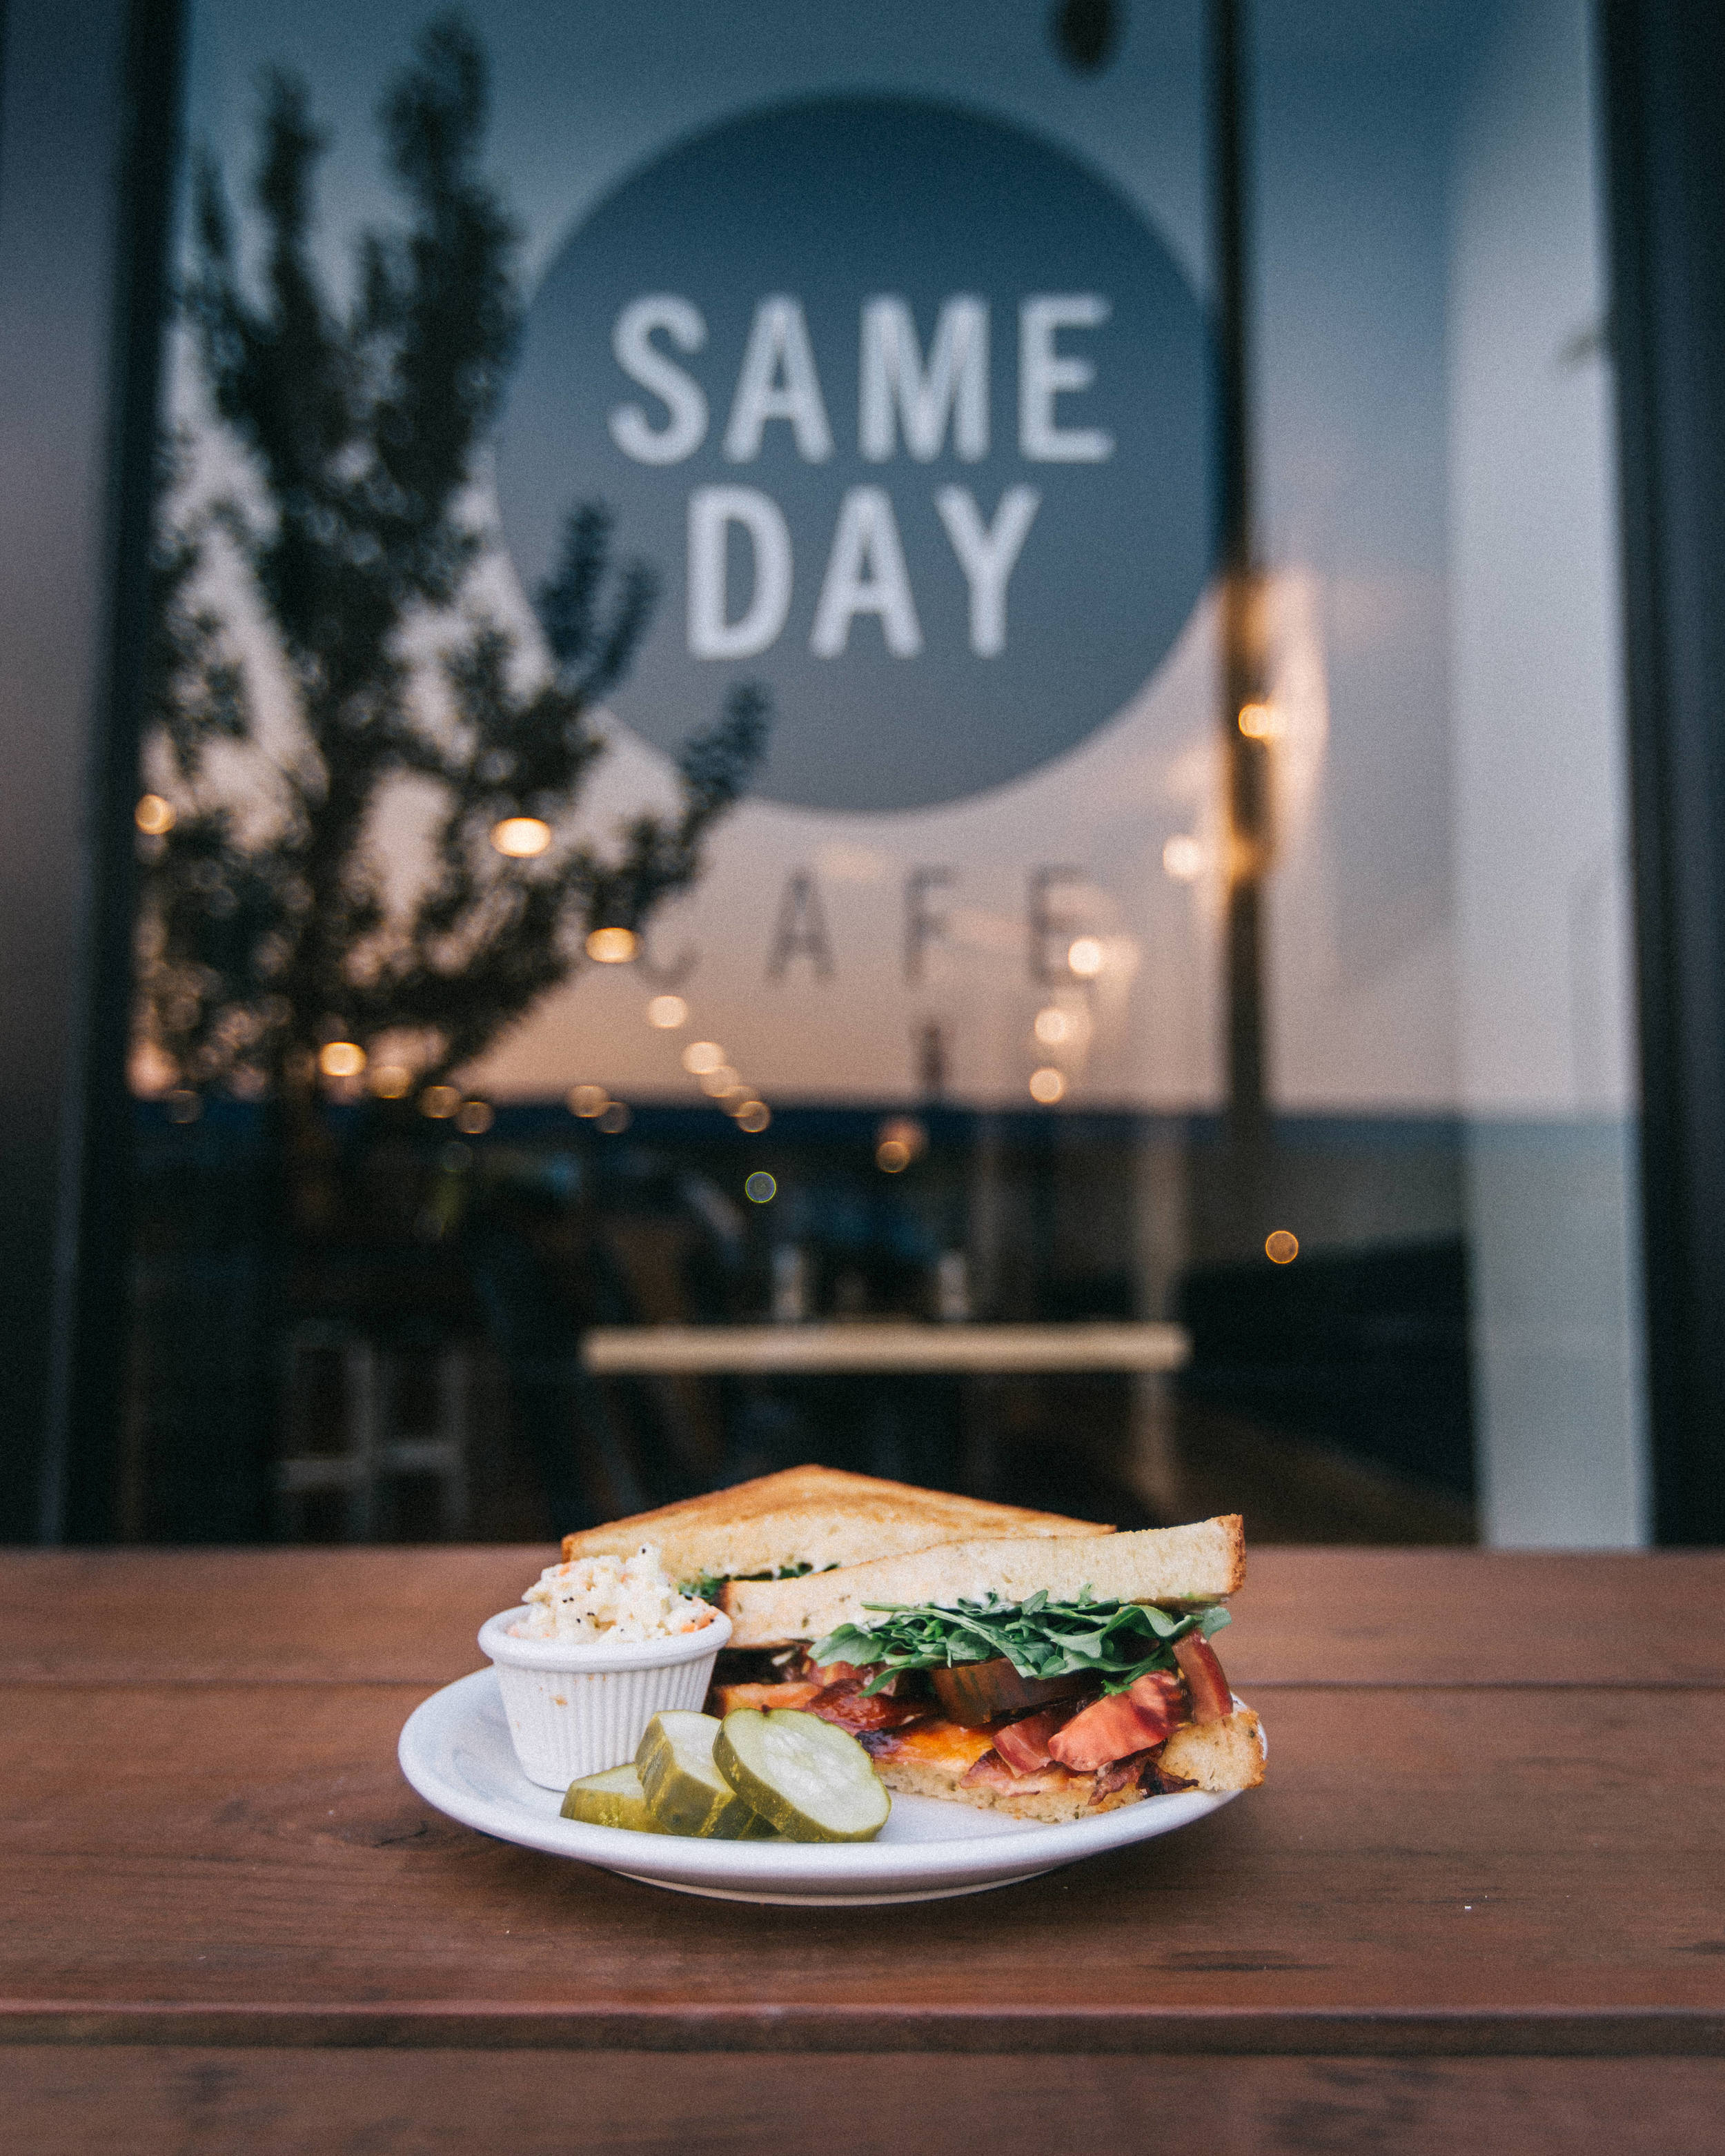 Same Day Cafe - Social Content